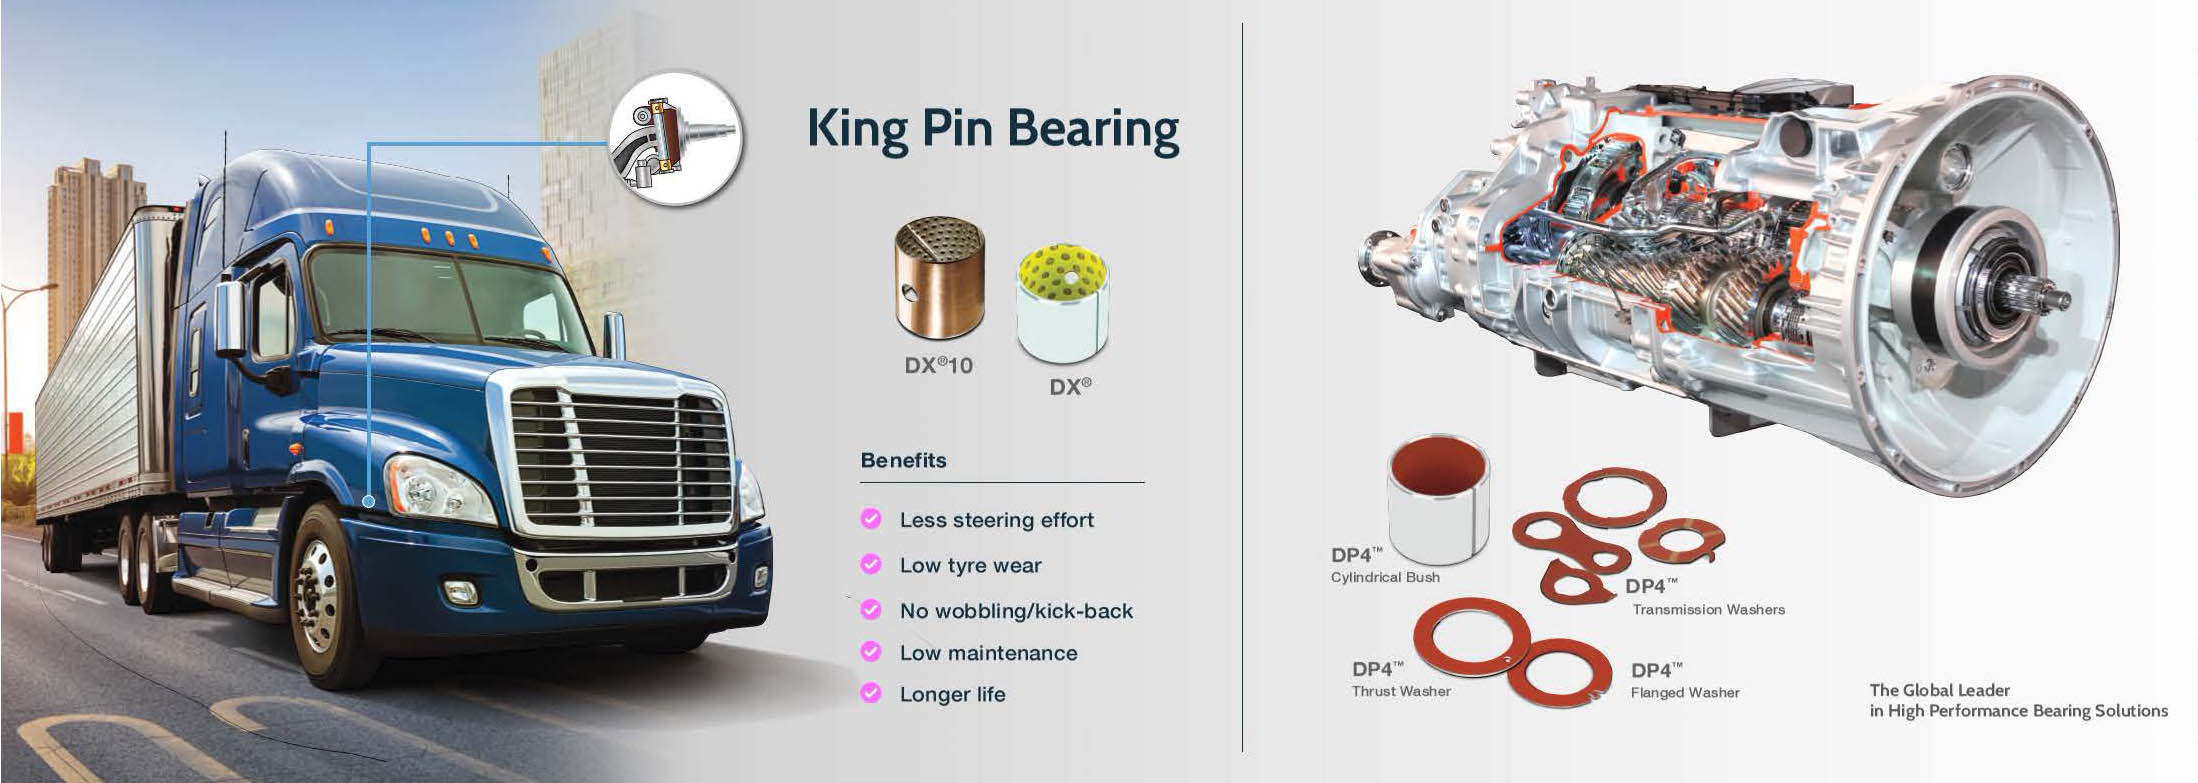 GGB's DX10 Material is Perfect for Construction Equipment, Heavy Duty Vehicle, and King Pin Applications